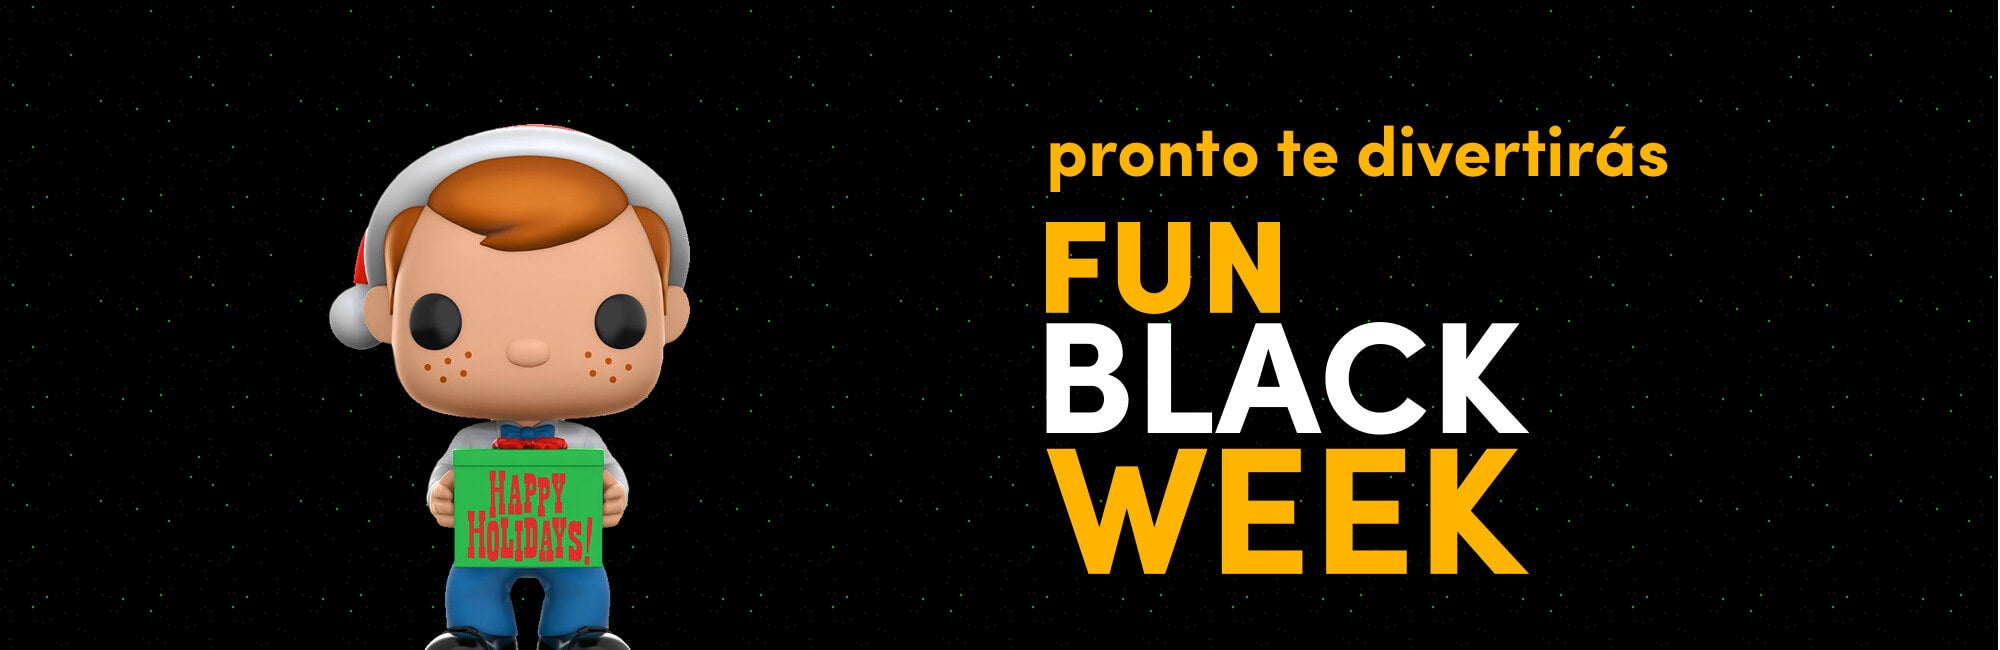 Fun Black Week Funatic Store Colombia 2018